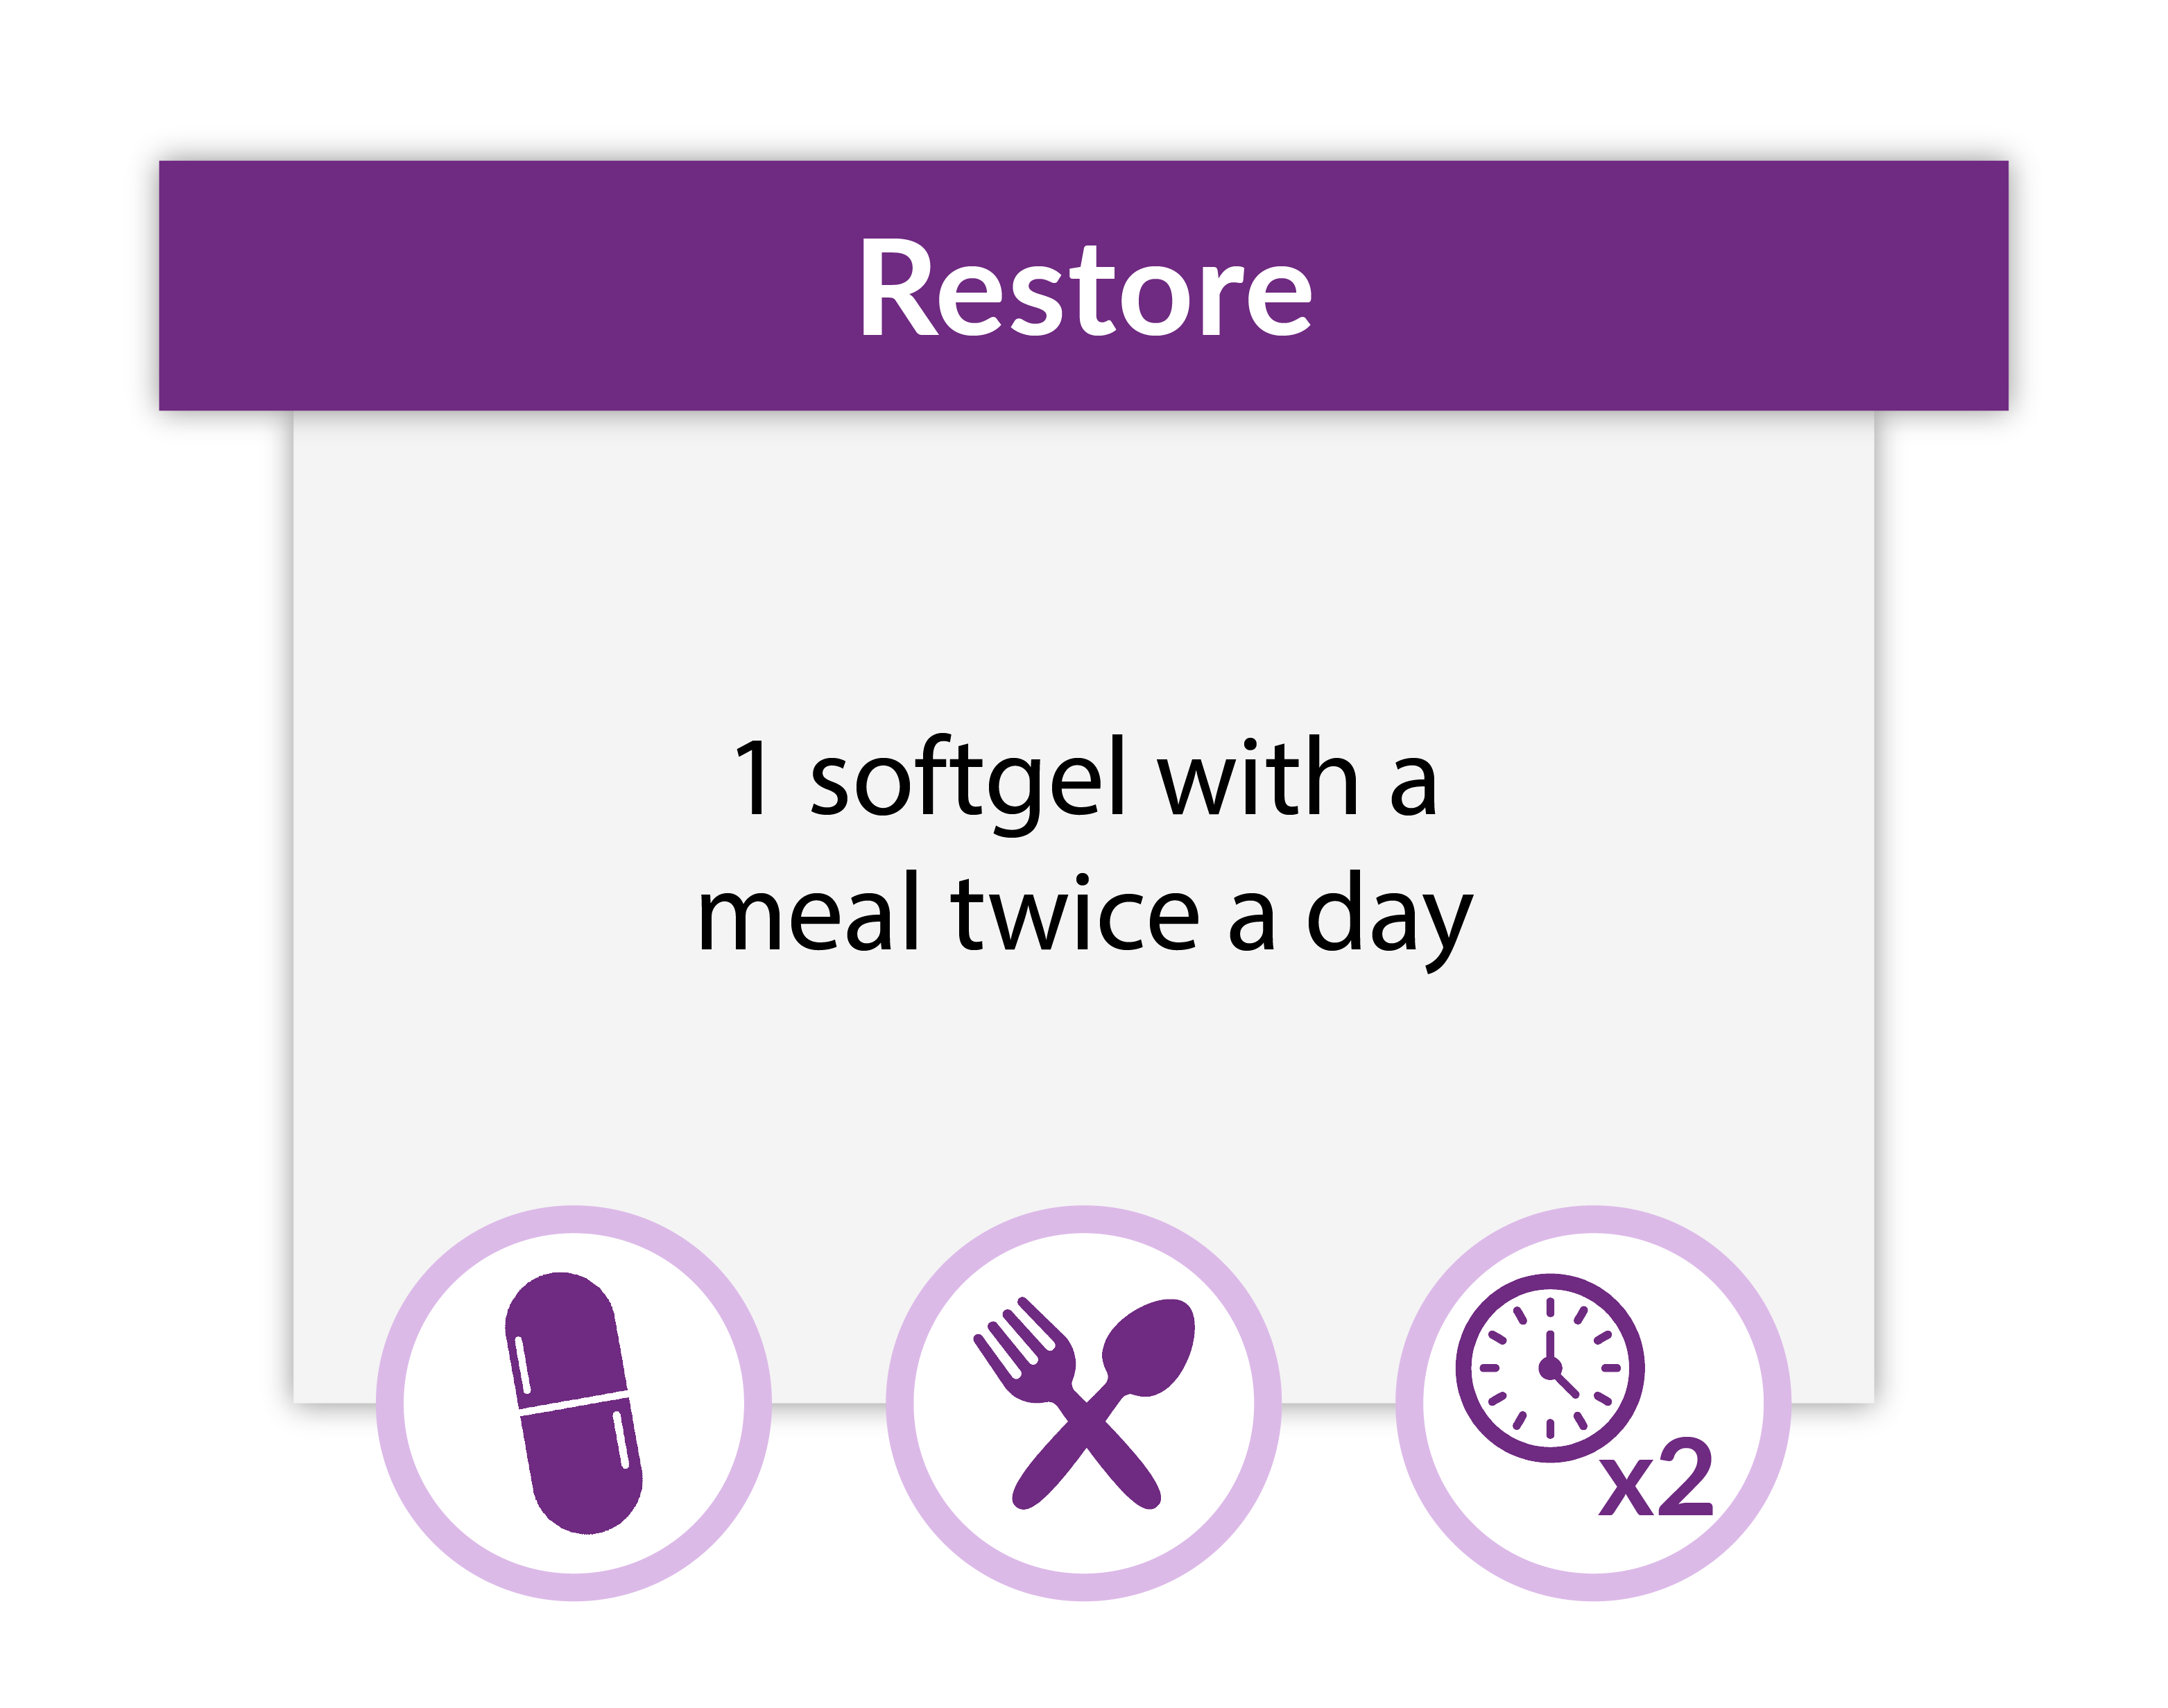 Take 1 softgel with a meal twice a day.